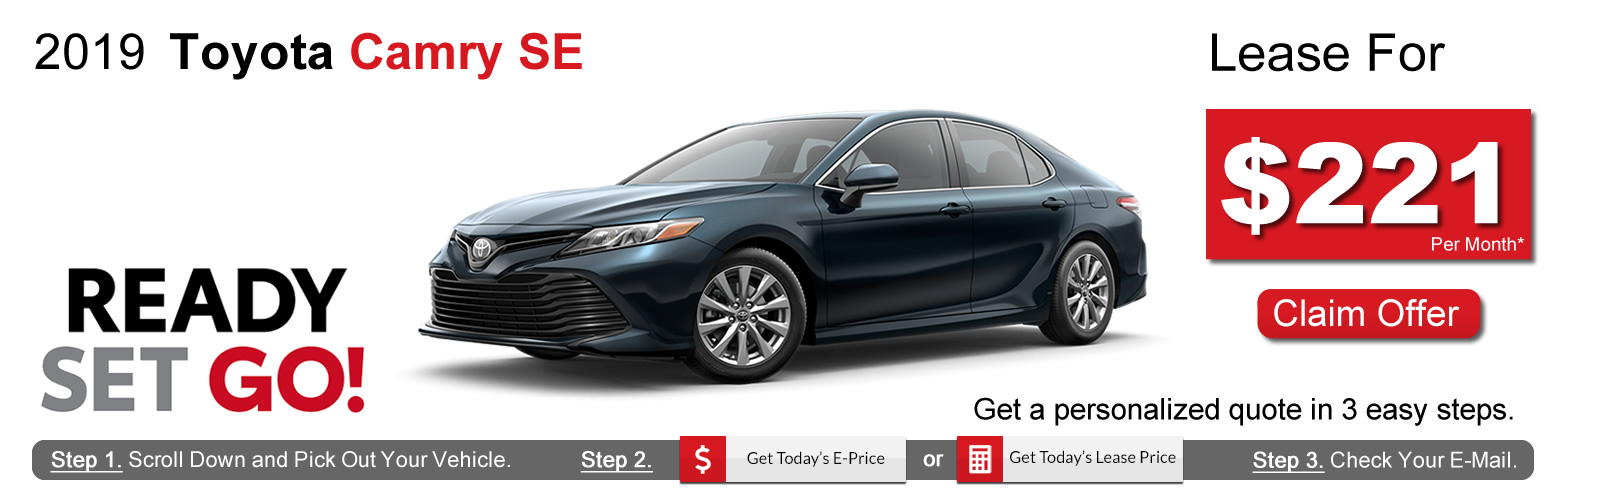 2019 Toyota Camry Lease Deals near Boston, MA